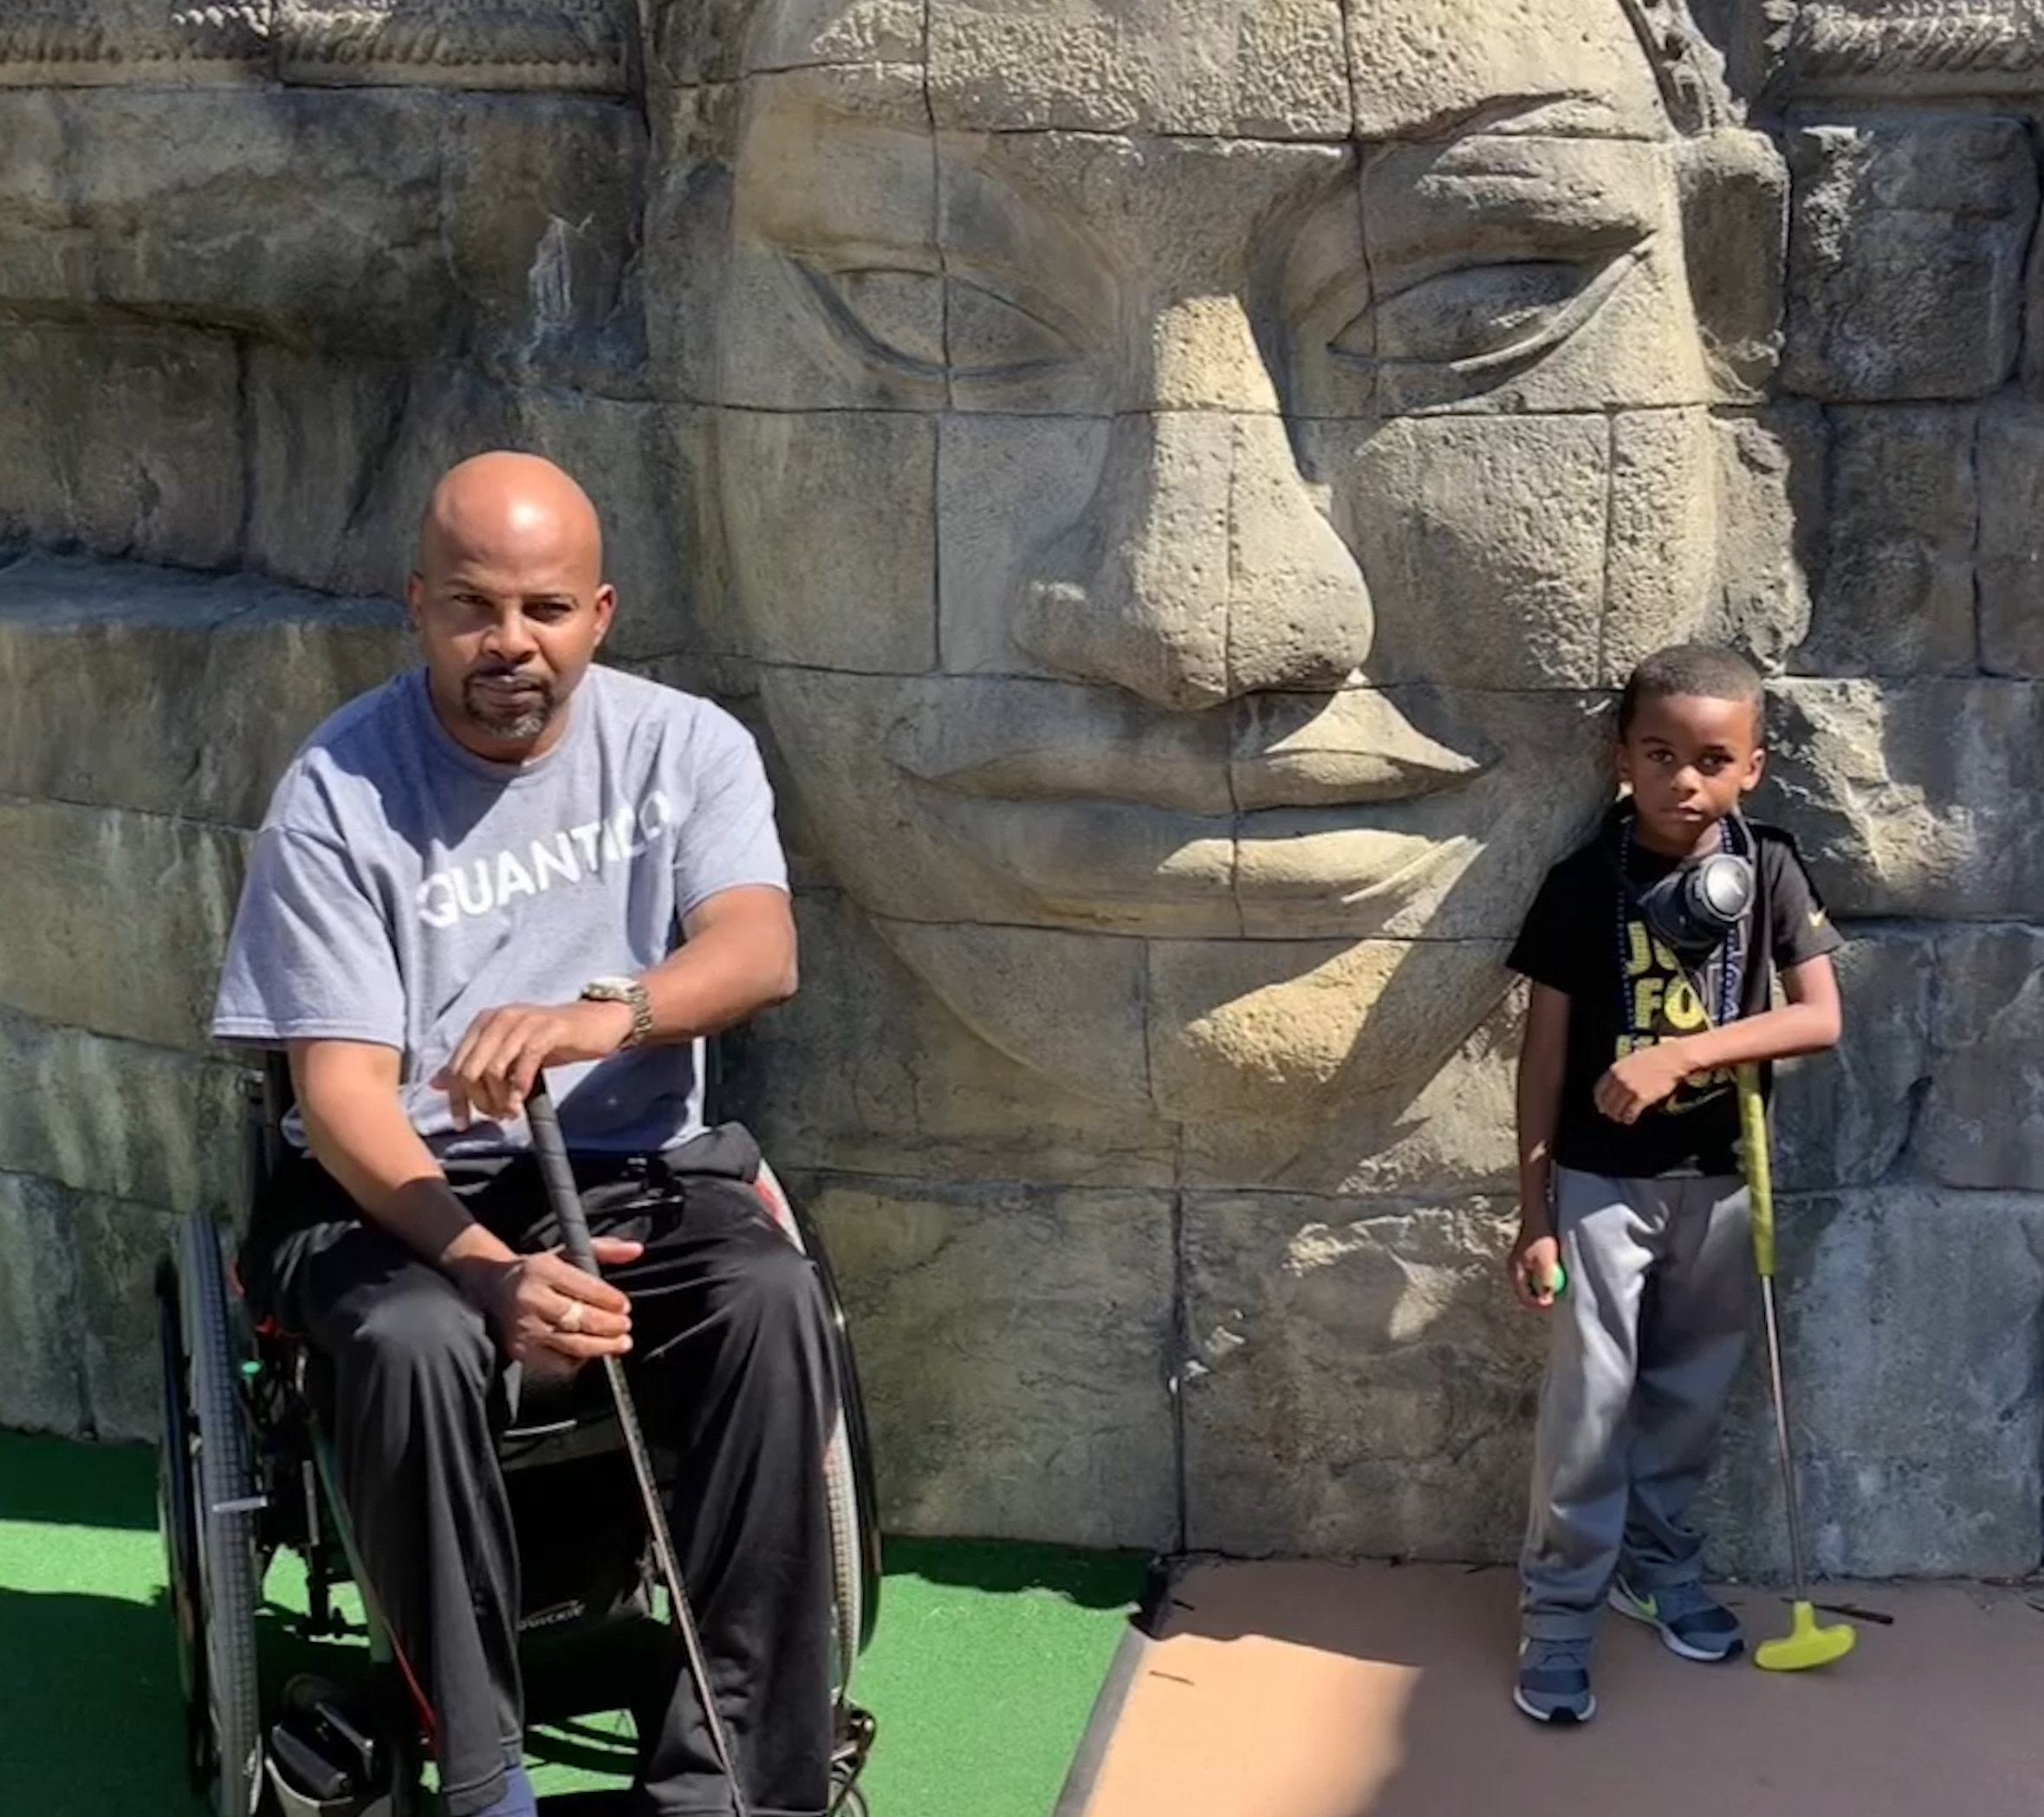 Sherman and his son playing mini golf